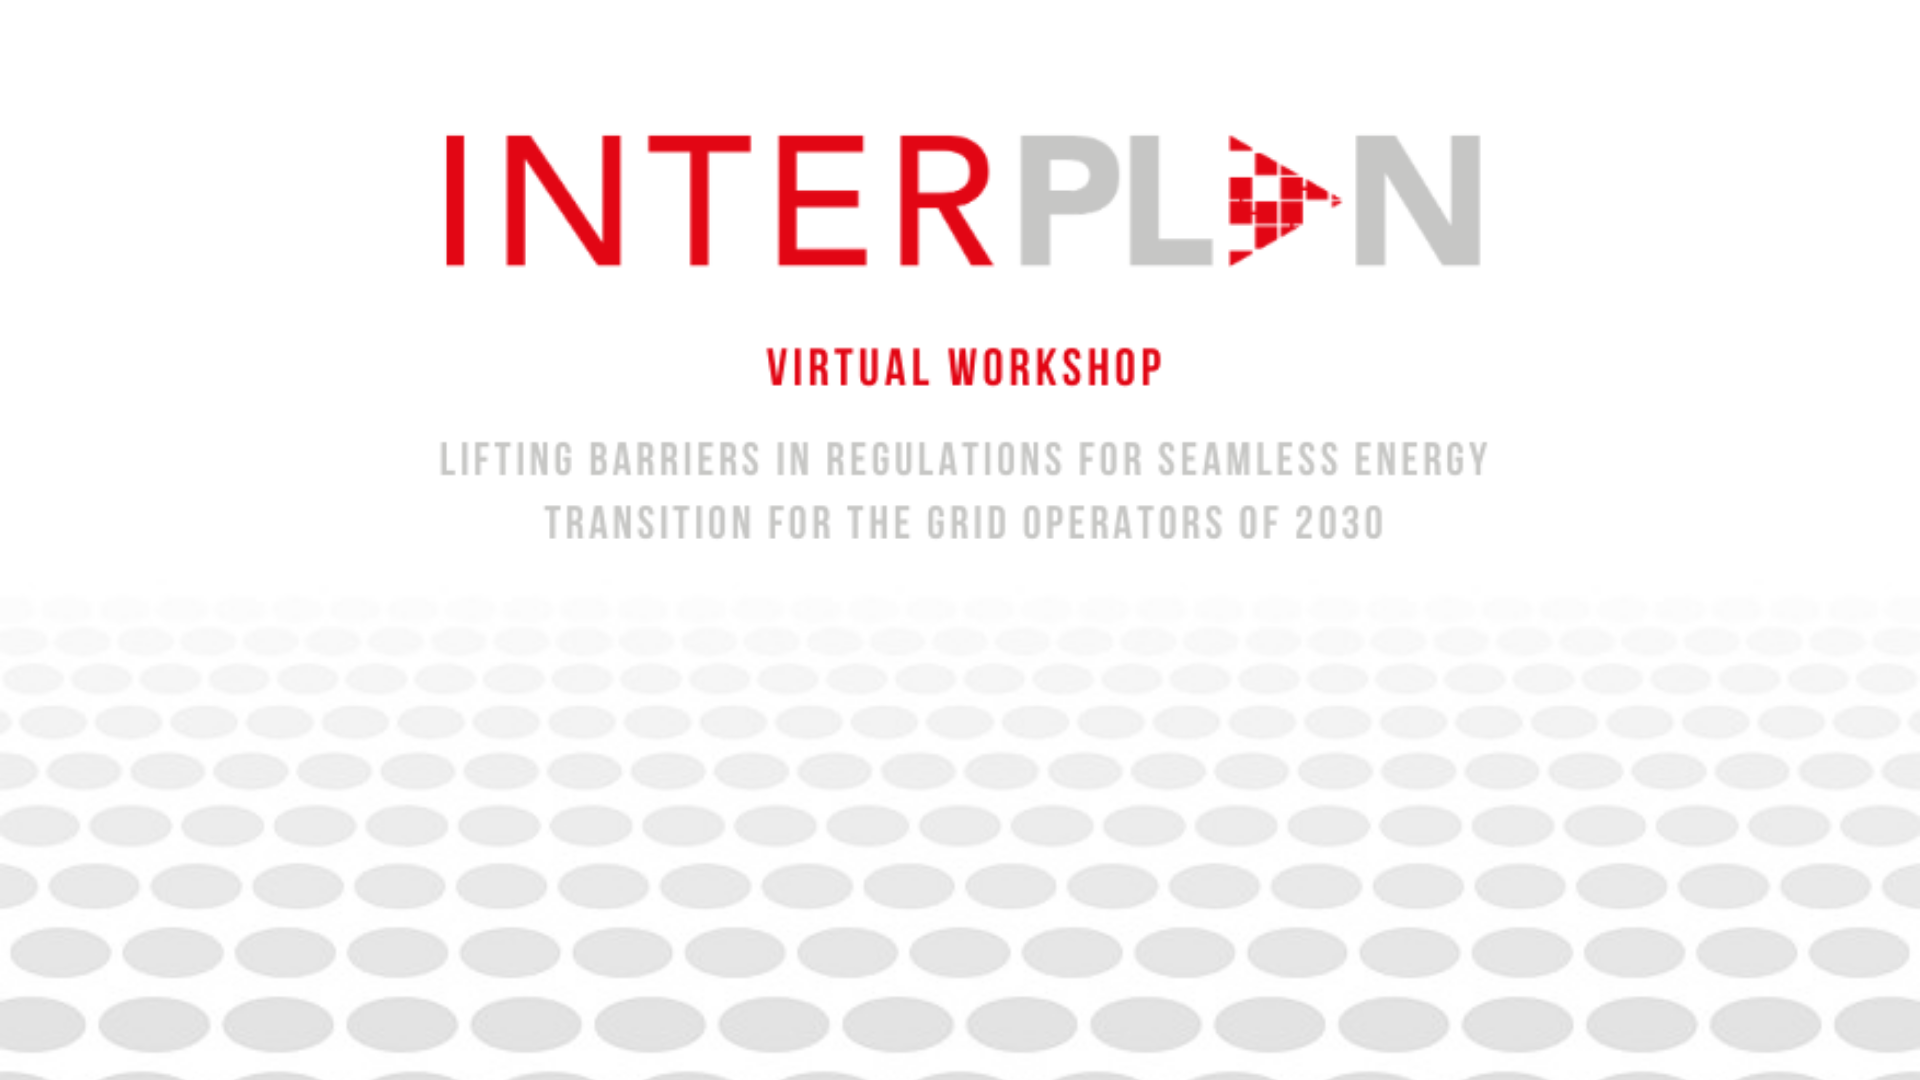 INTERPLAN virtual workshop on the challenges and barriers for the grid operators of 2030